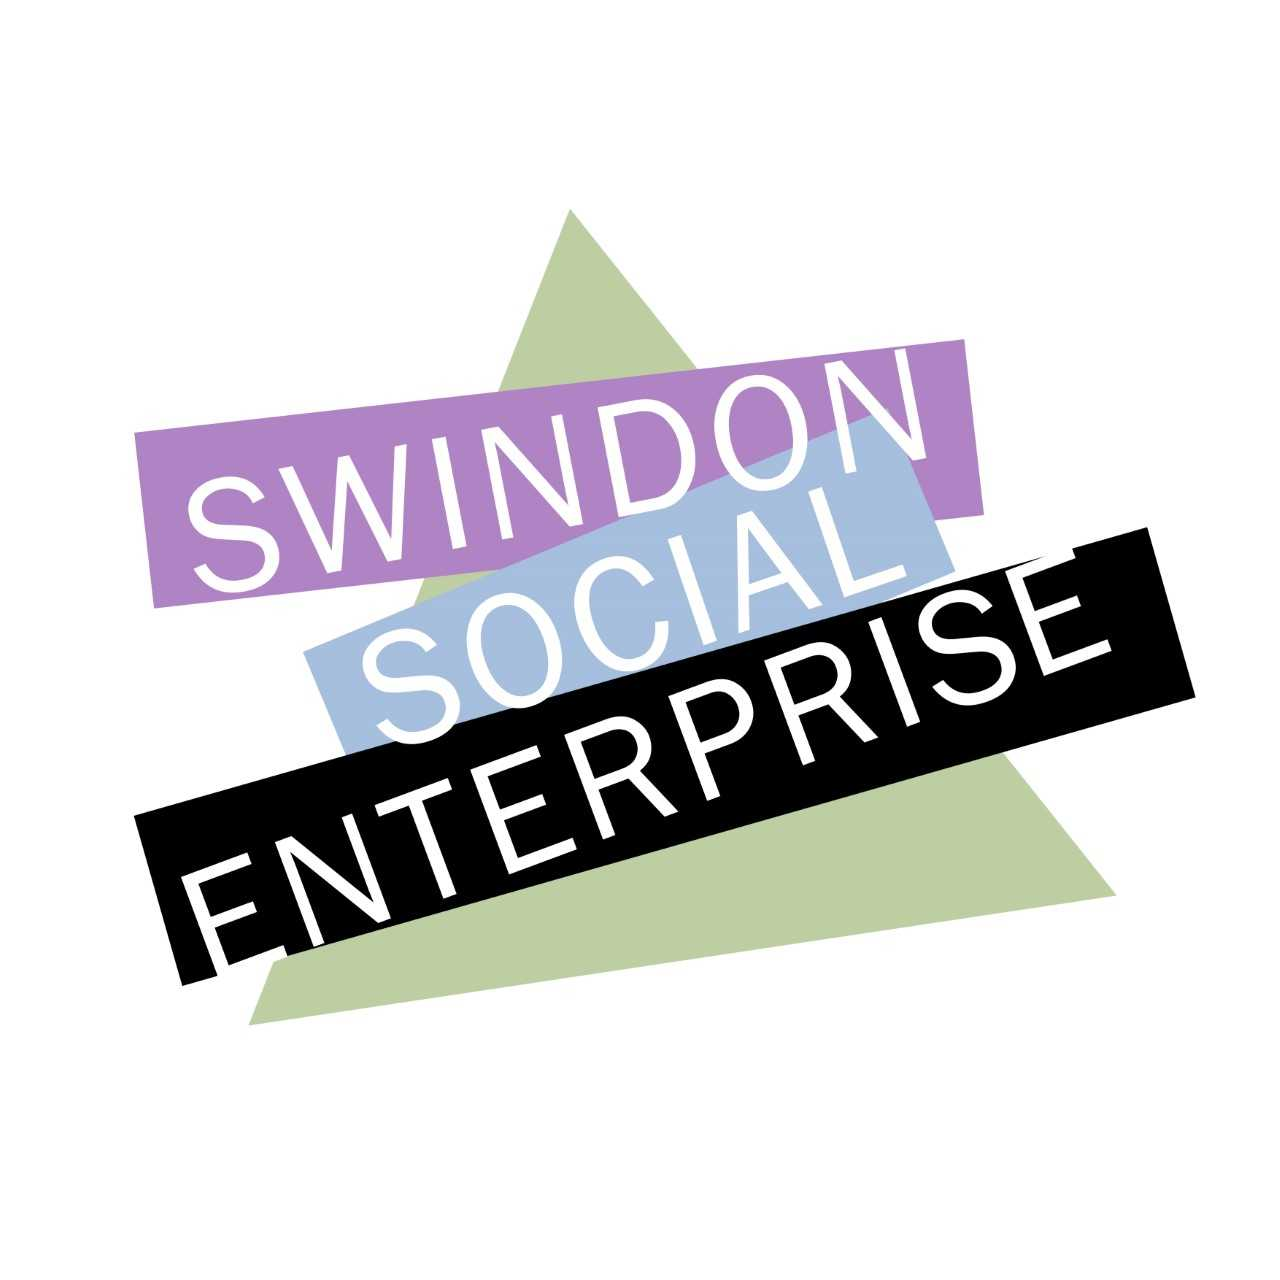 Entrepreneur James Phipps Comments on Swindon Social Enterprise Network